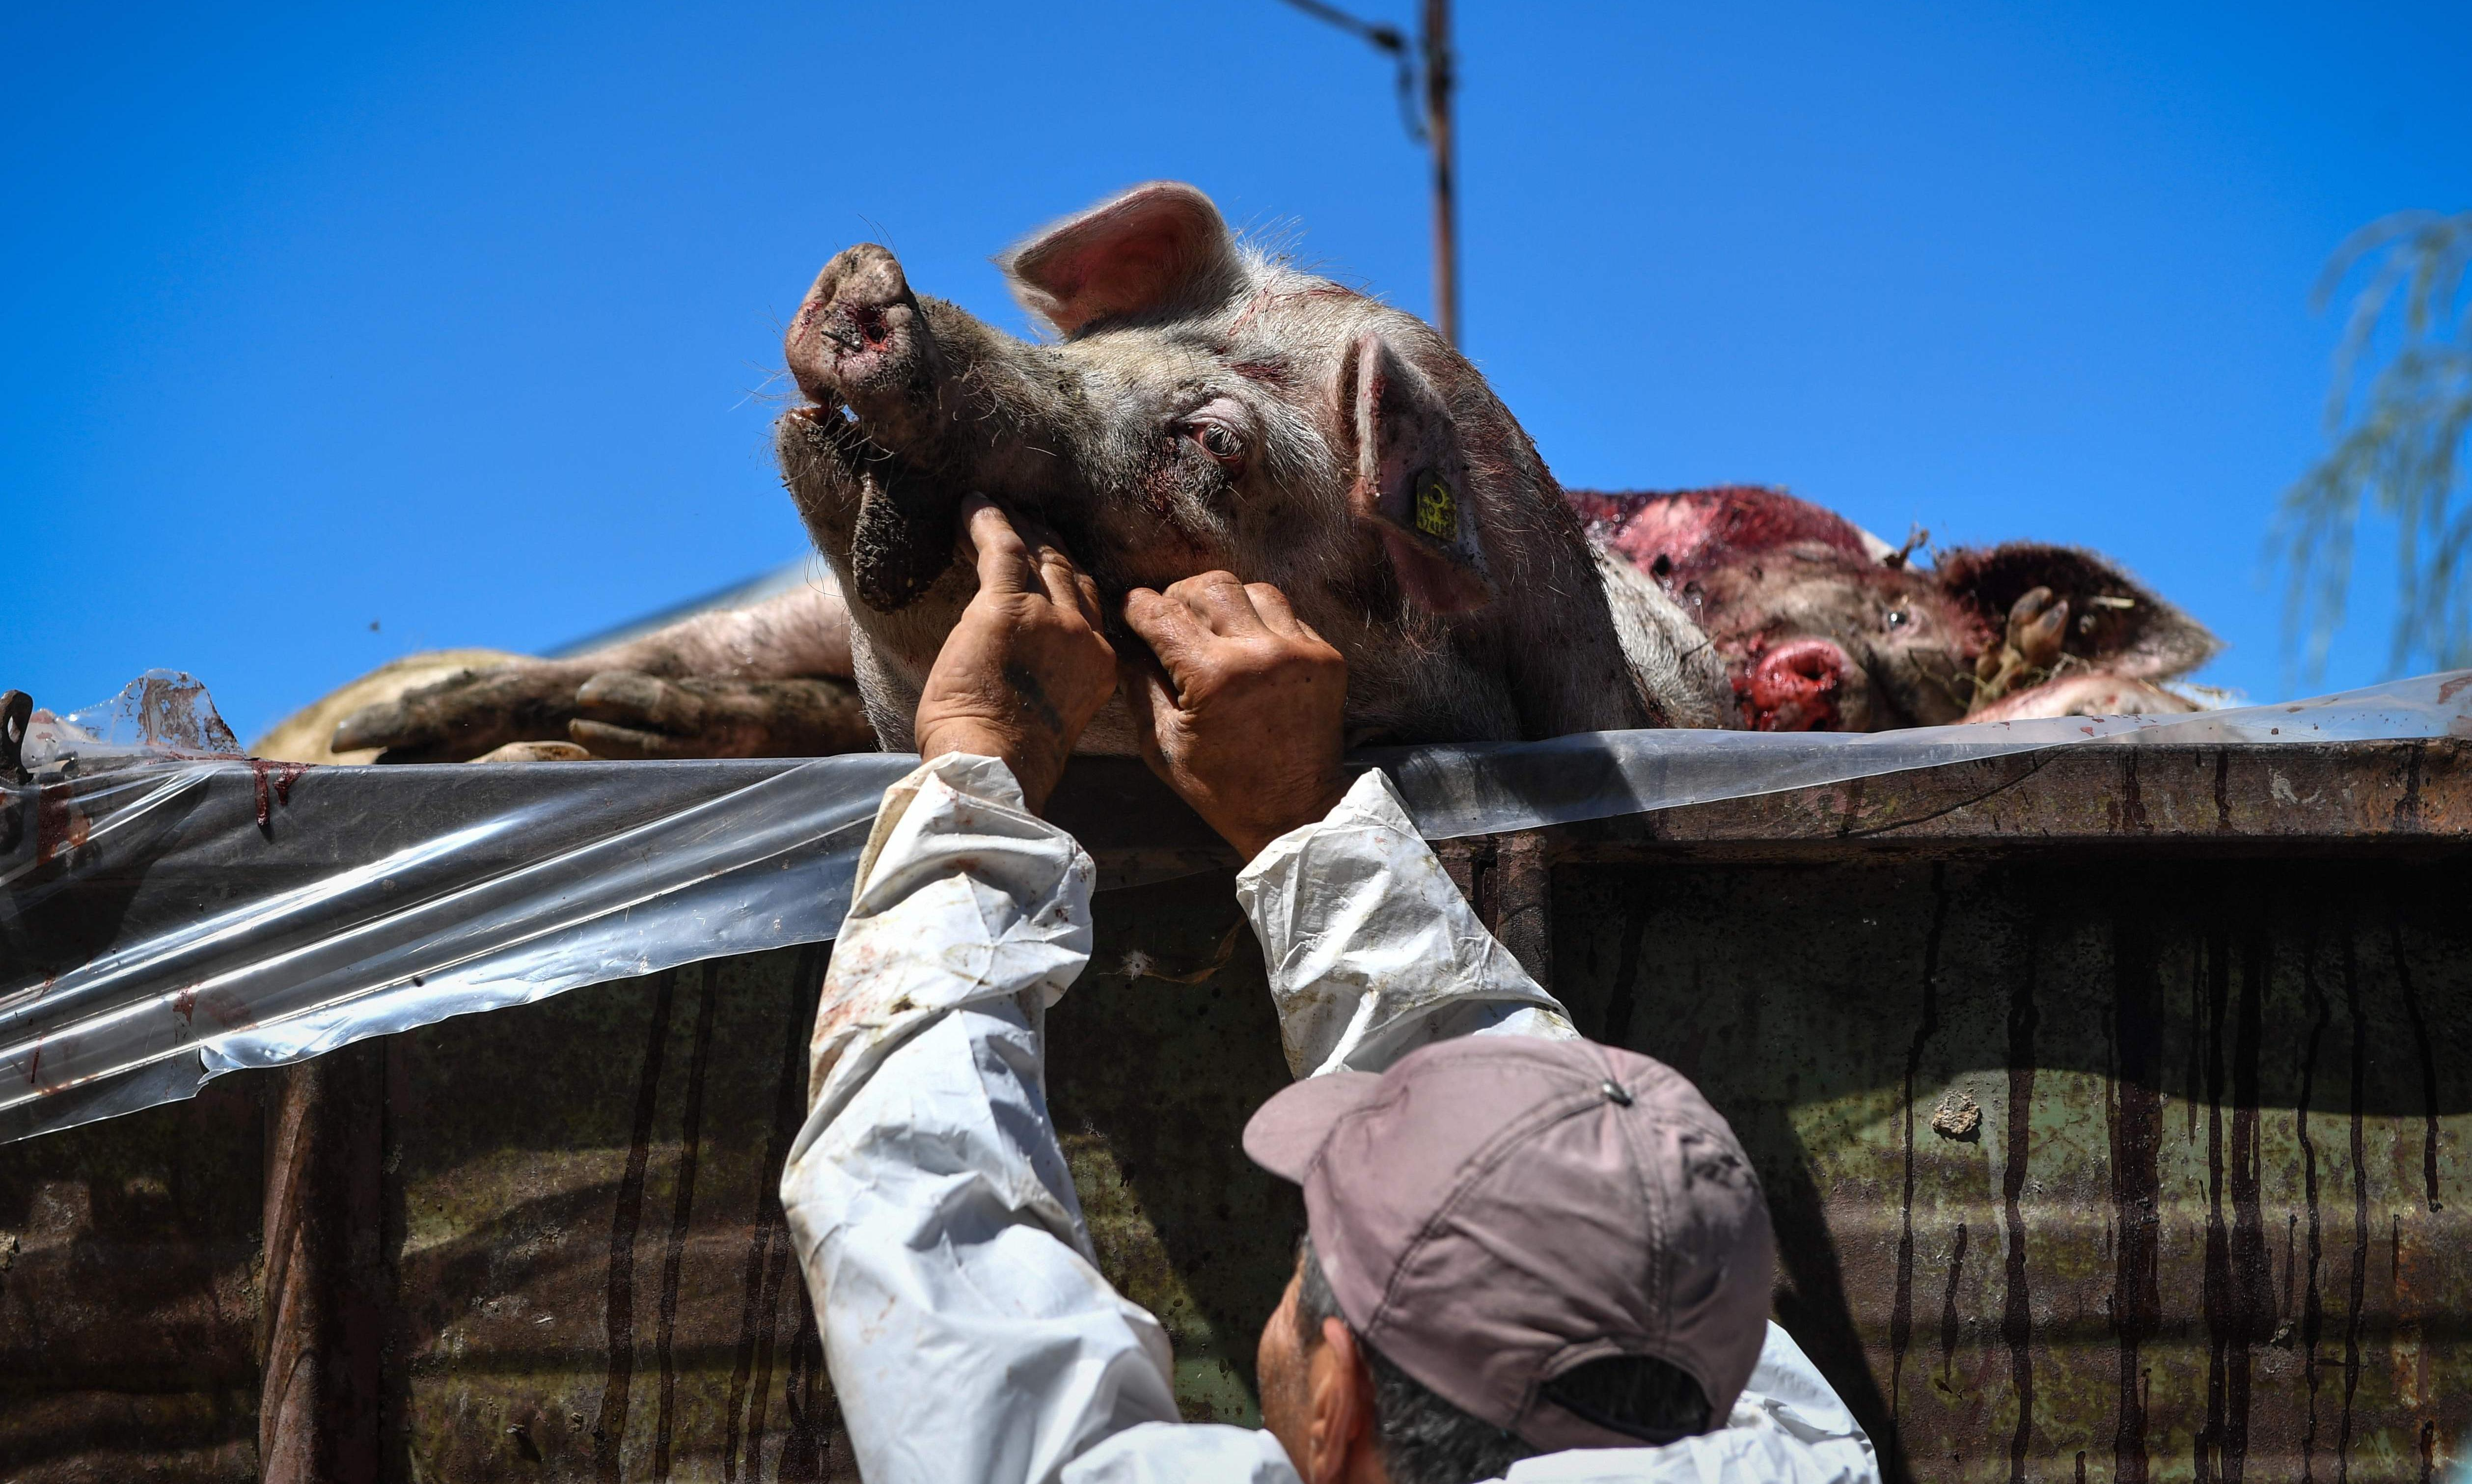 'It's not if, it's when': the deadly pig disease spreading around the world